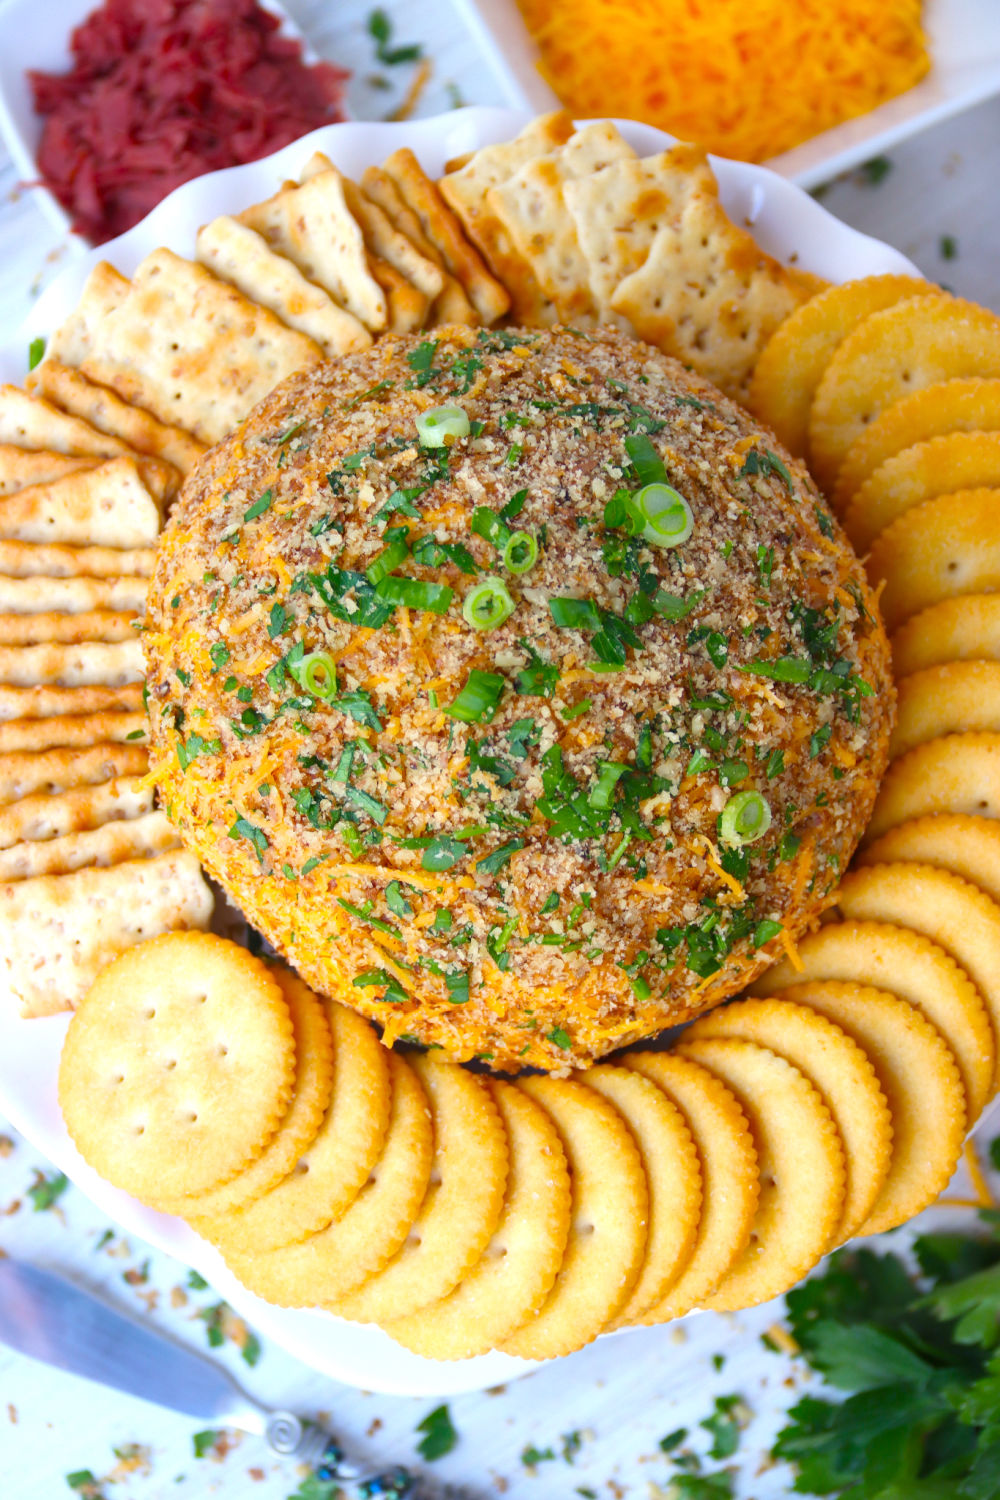 top shot of cheese ball covered with parsley and green onions